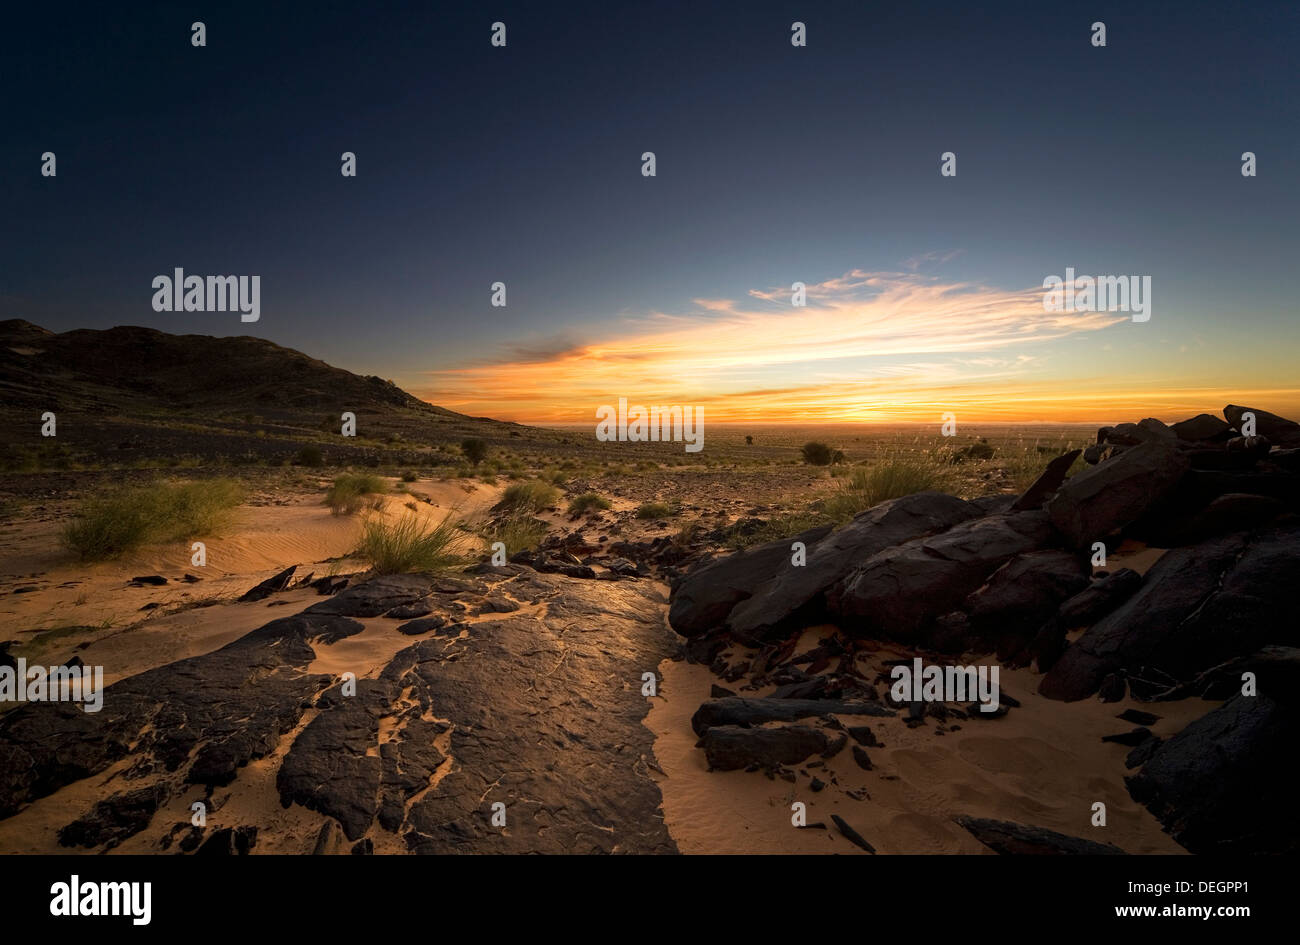 Dawn over granite rocky outcrop in hill location, Western Sahara desert, Mauritania, NW Africa - Stock Image